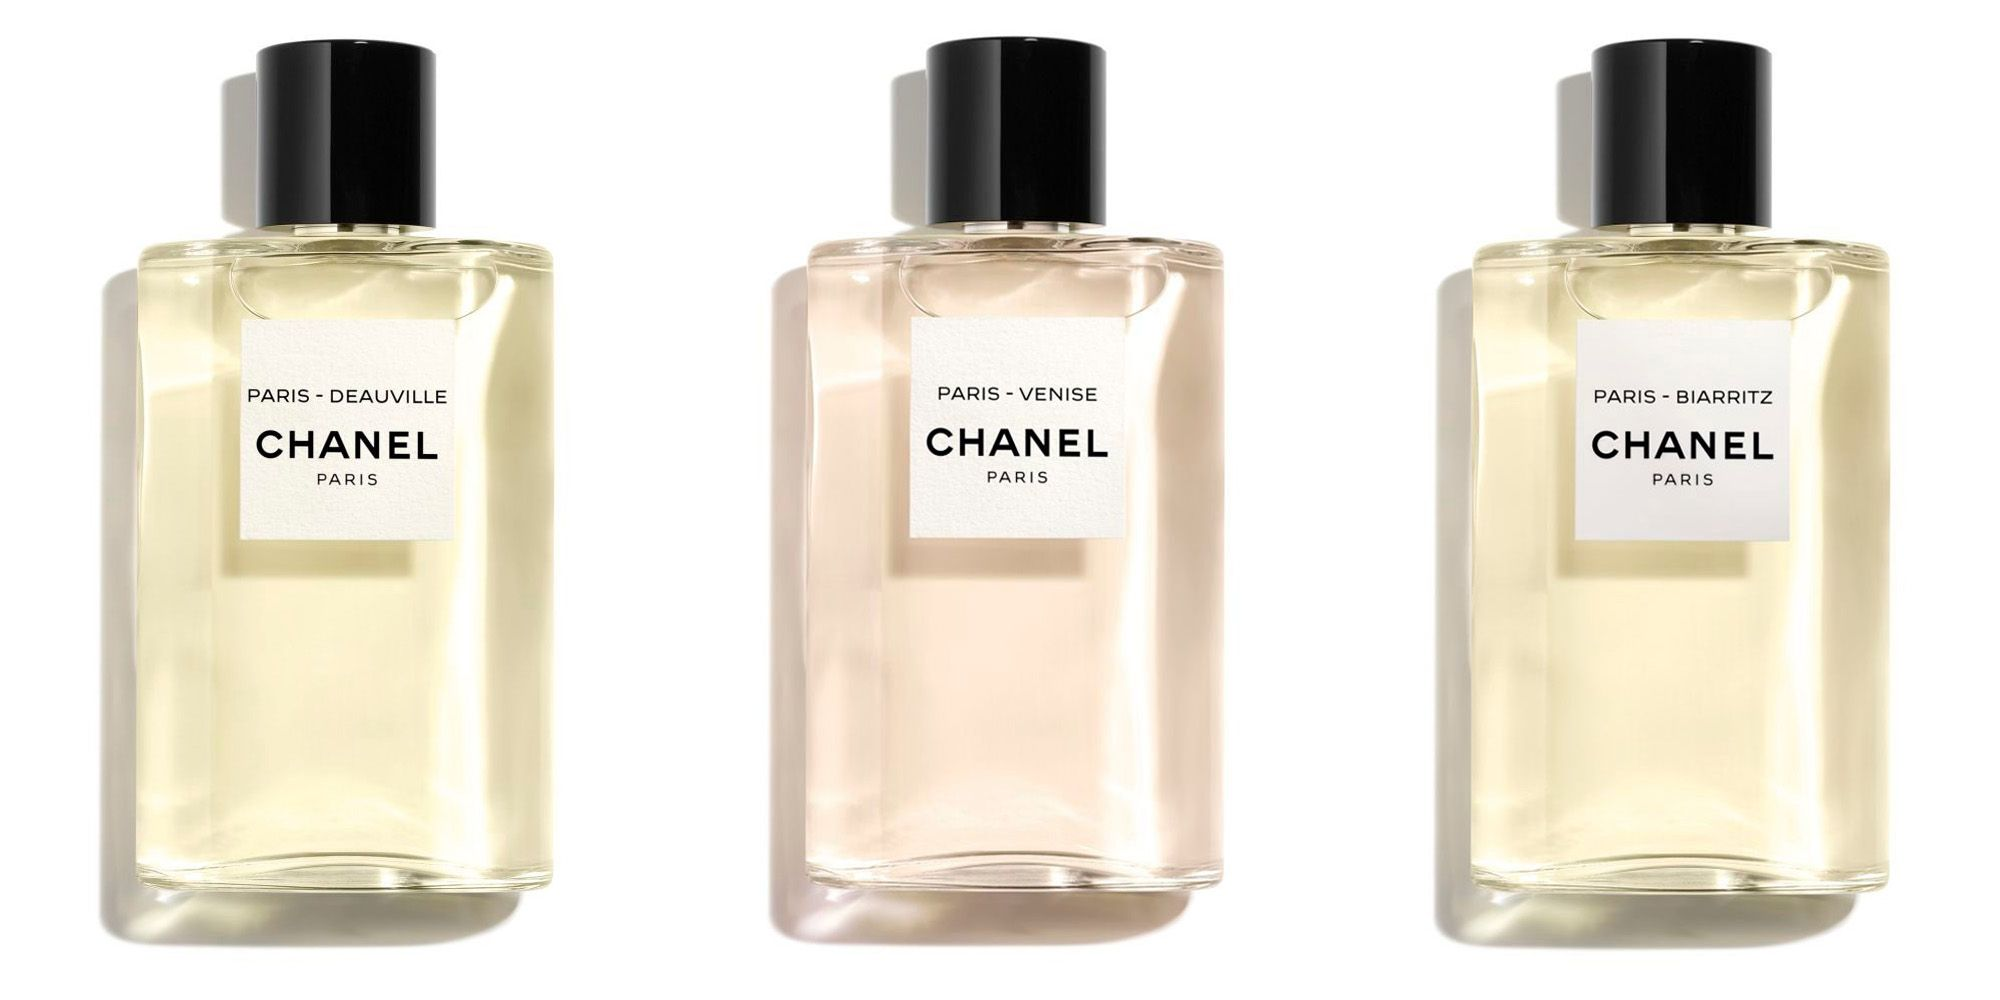 Chanel Just Launched Three Unisex Fragrances That Will Change The Way You  Think About Chanel Perfume a4bec53b7a8